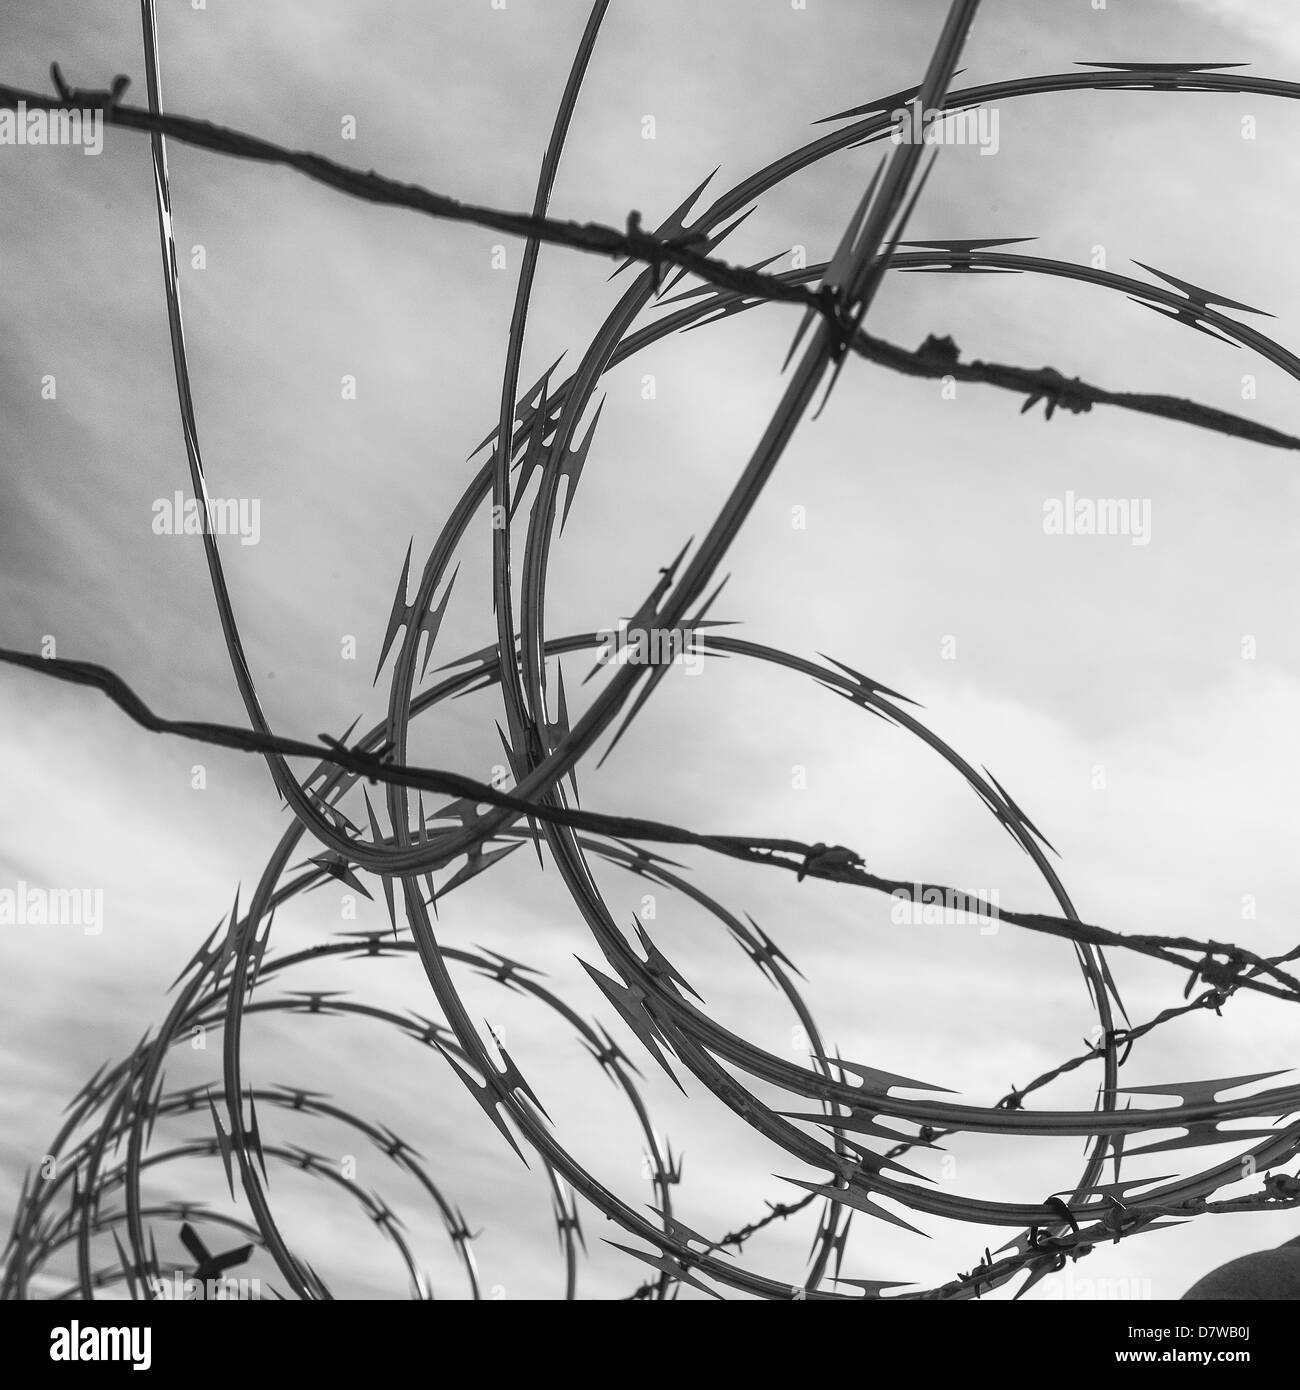 Razor Wire Black and White Stock Photos & Images - Alamy